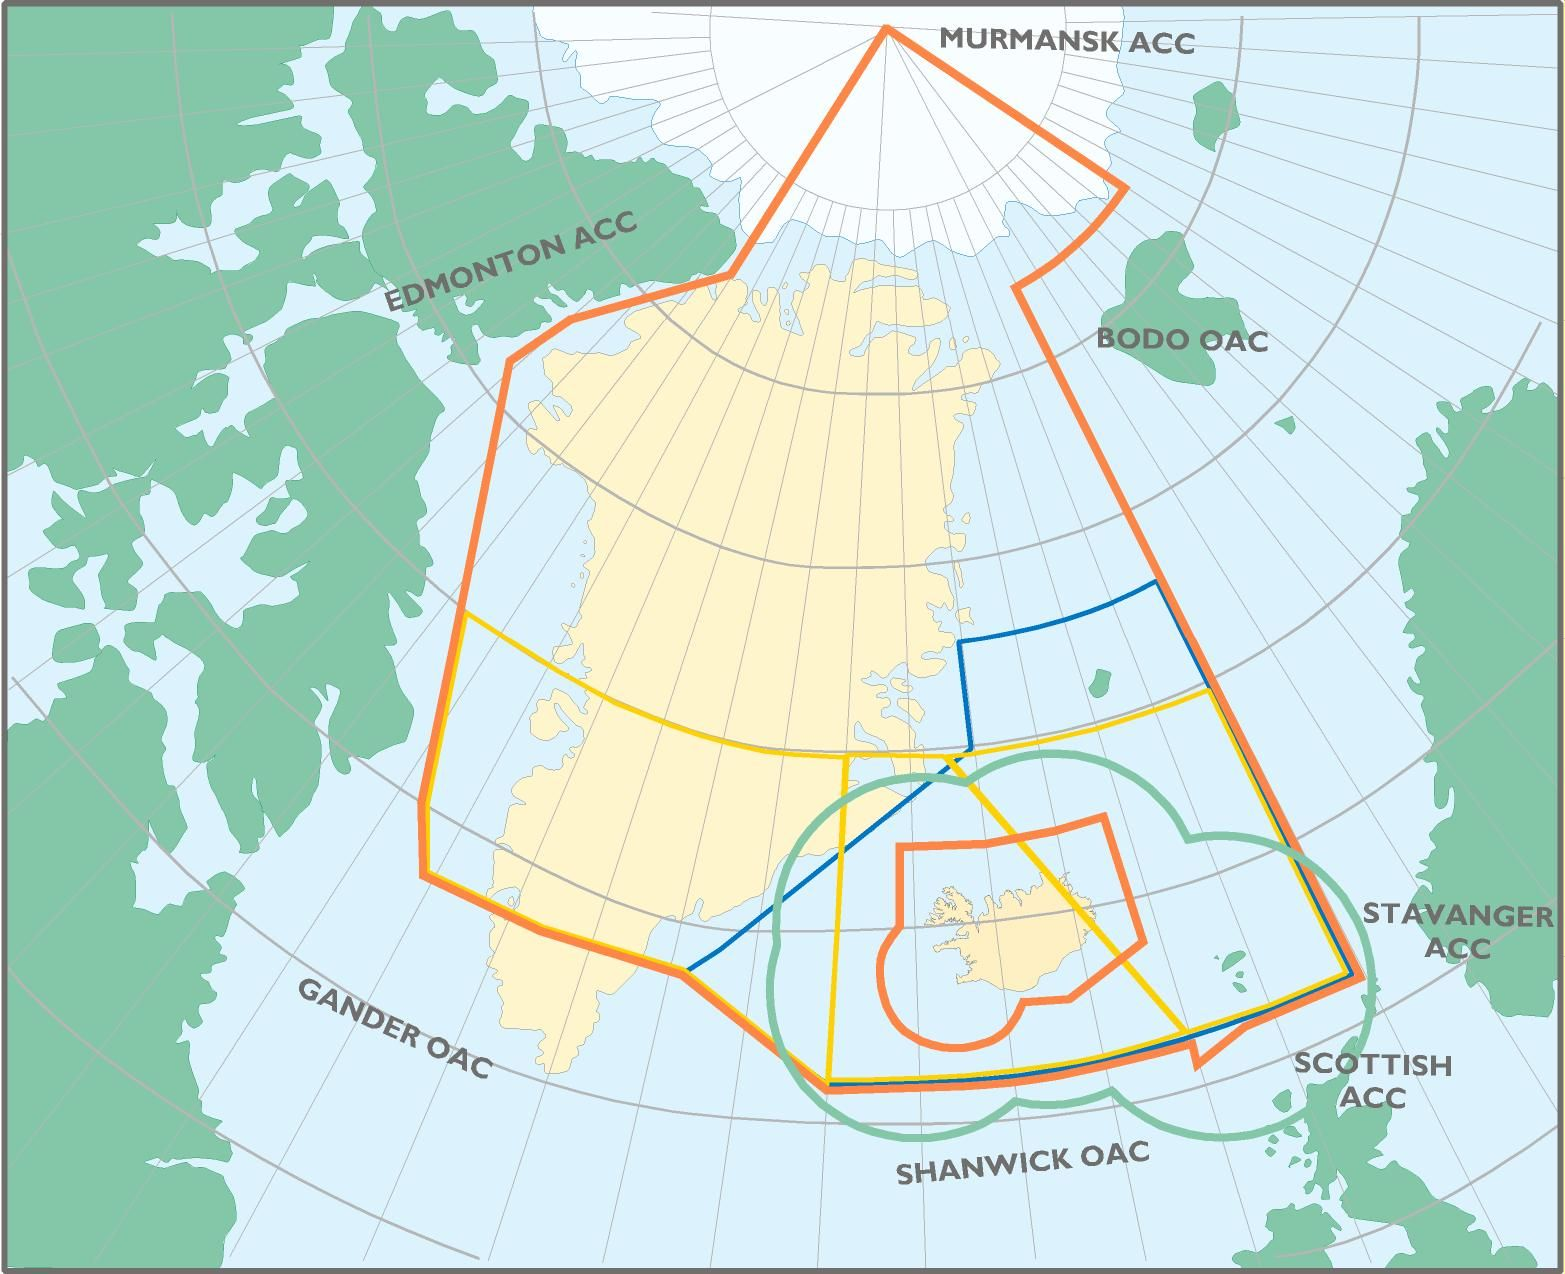 Radar coverage and adsb coverage in iceland atc bird area